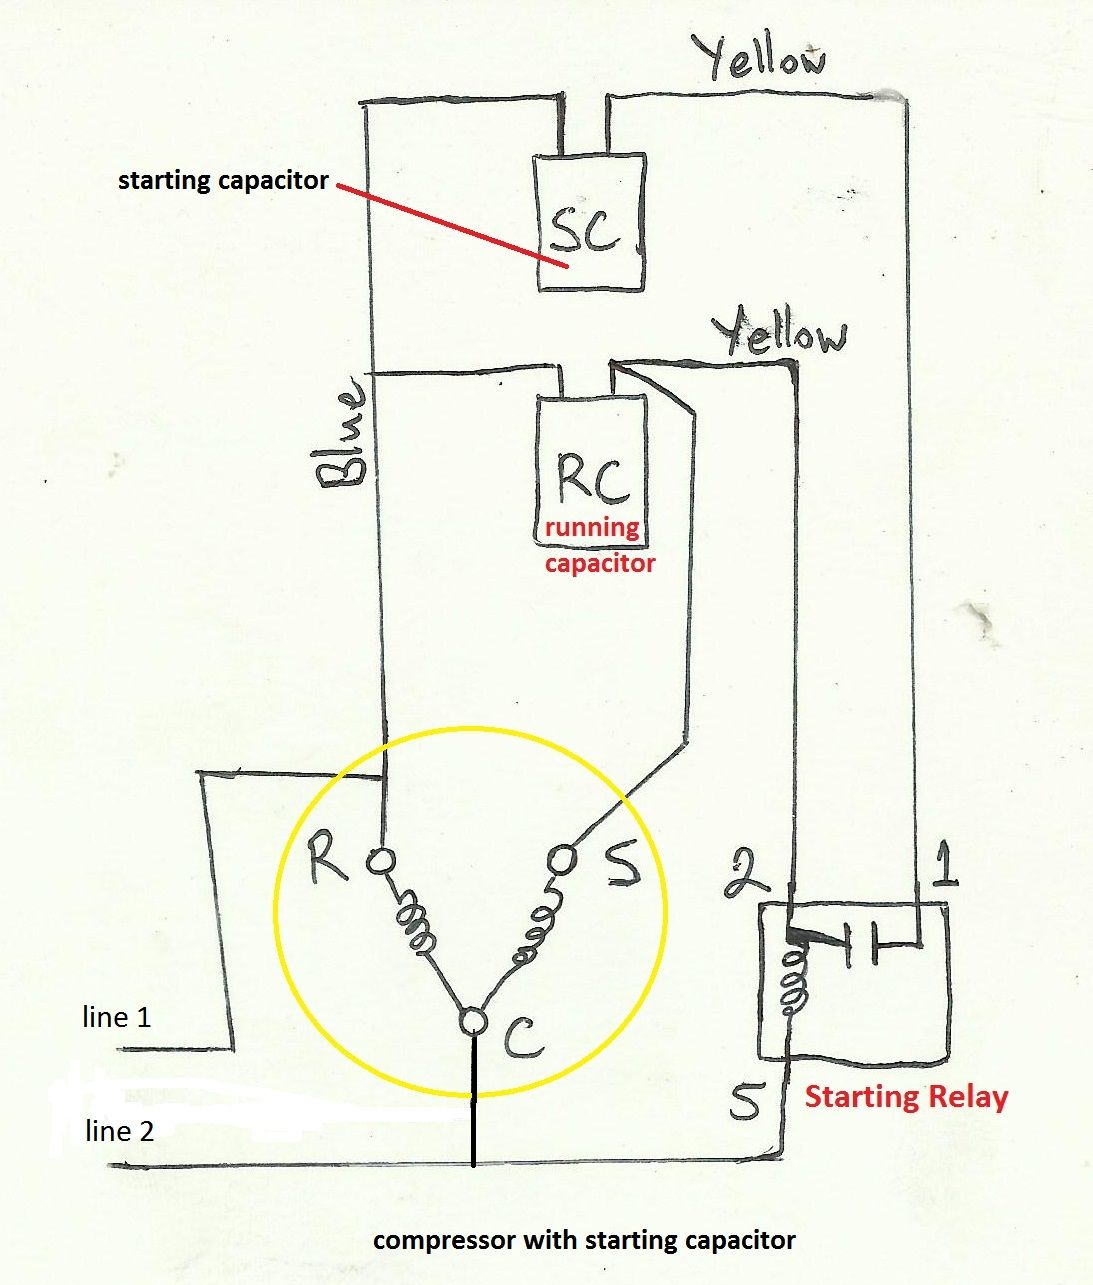 50528d800da7d87408a55b396c2aa5e6 ac capacitor wiring diagram ac fan motor wiring diagram \u2022 wiring run capacitor wiring diagram air conditioner at reclaimingppi.co